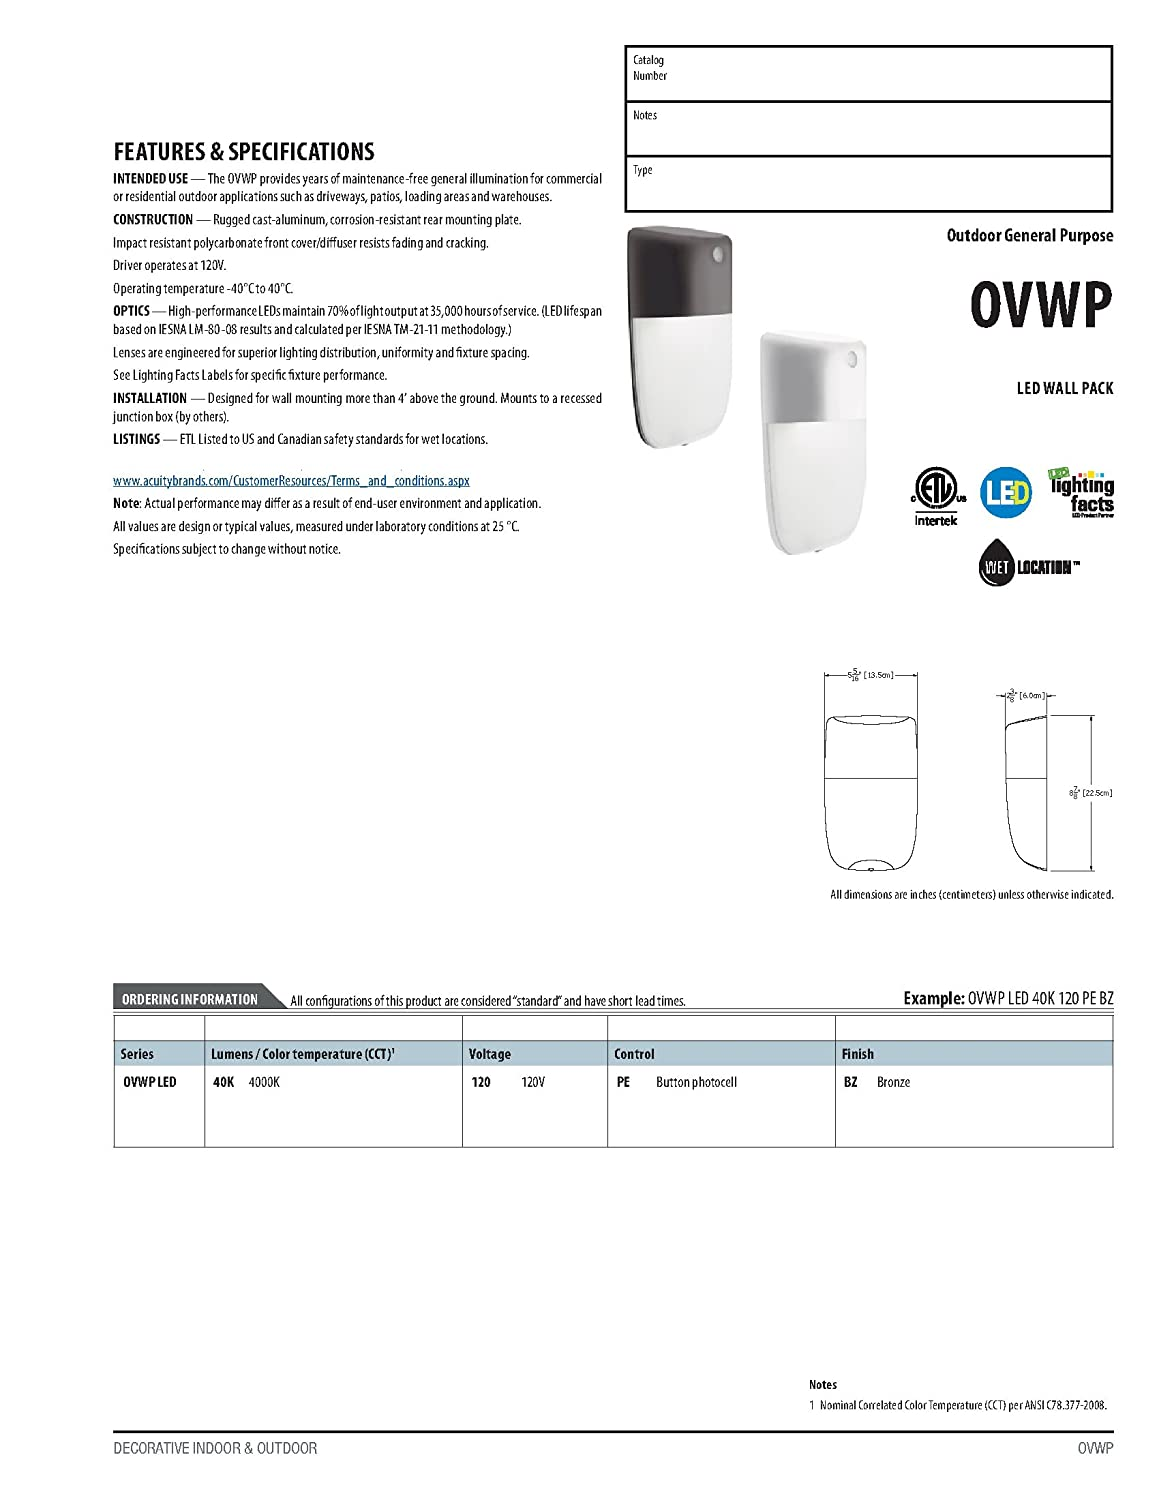 1,475 lumens 1475 25 Watts Lithonia Lighting OWP P1 120 PE DDB HP17 M4 Bronze Dusk to Dawn Integrated Outdoor LED Wall Pack 50K Hours-Gen 2 Dark